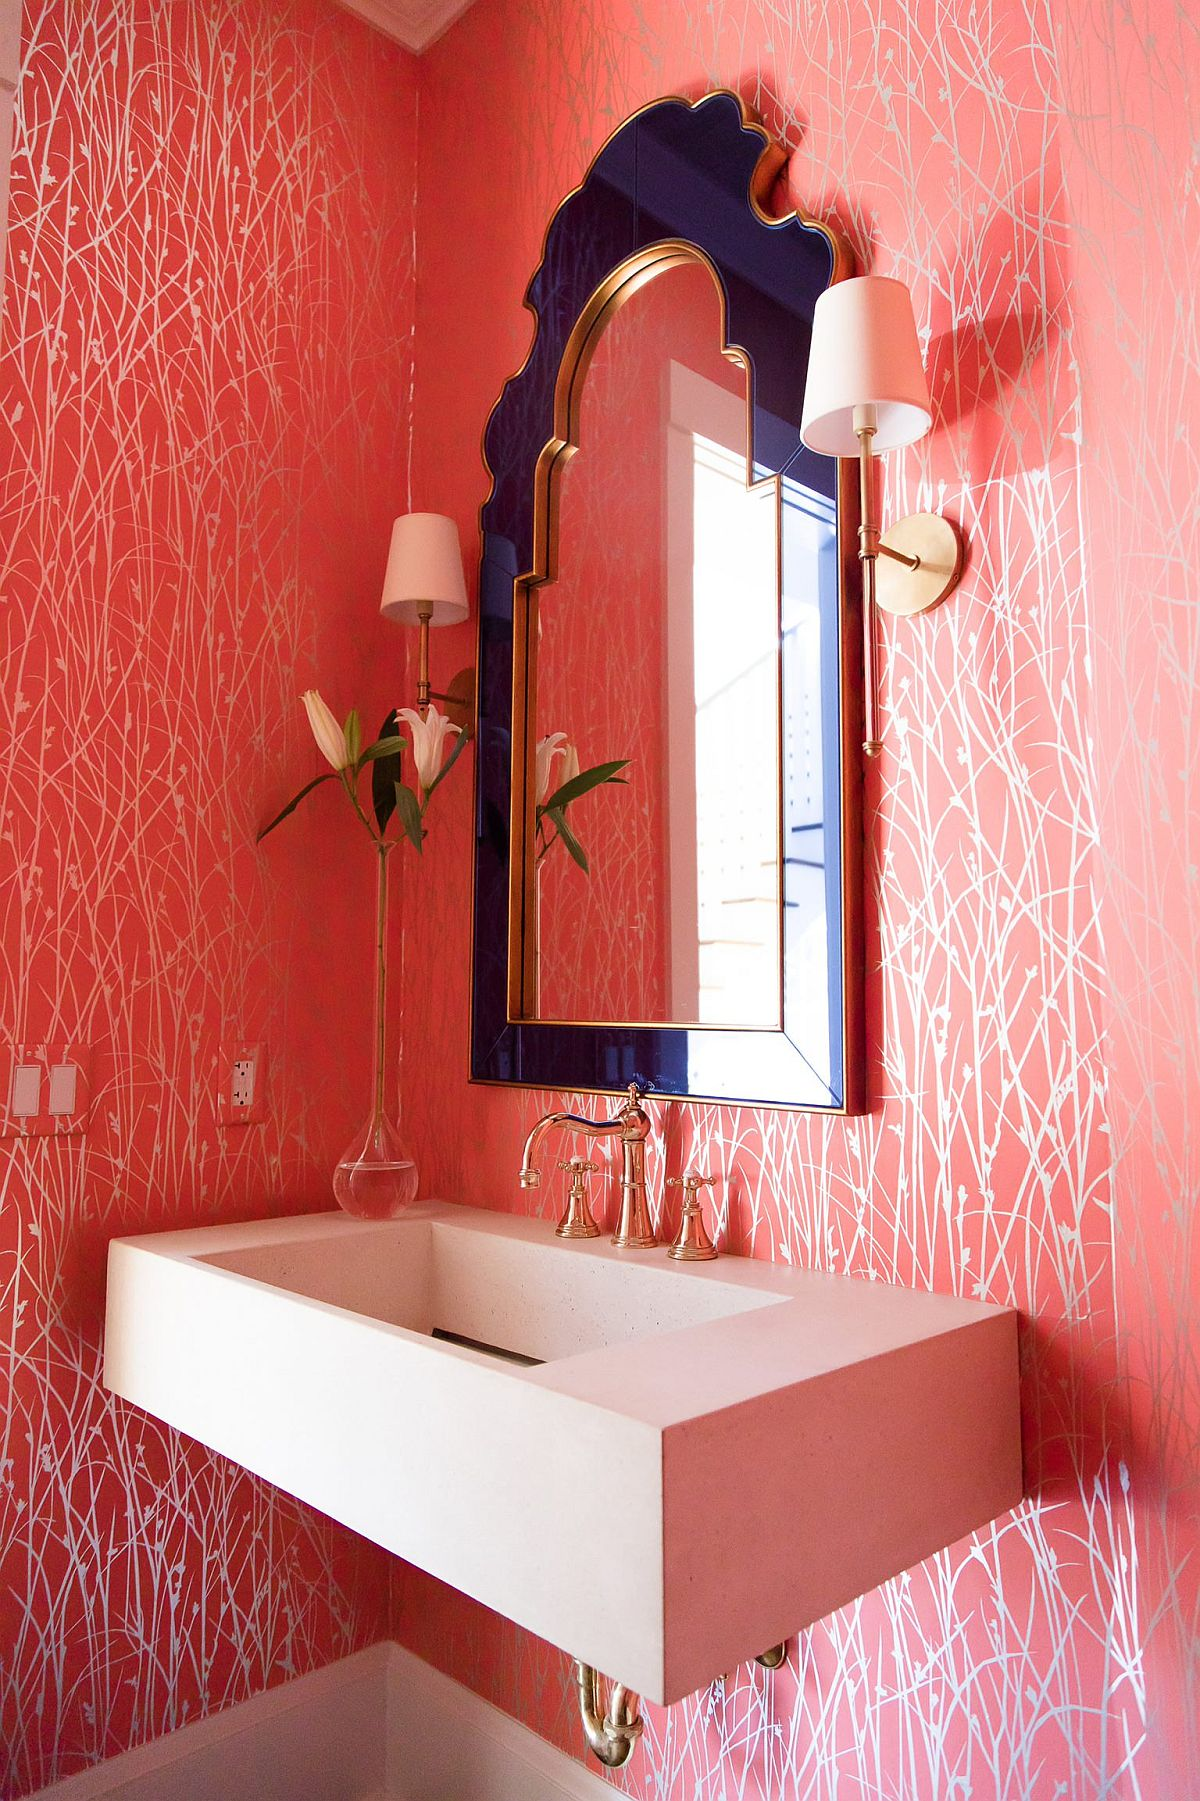 Mirror with purple framed and walls with pattern-filled pink wallpaper are all about glam!